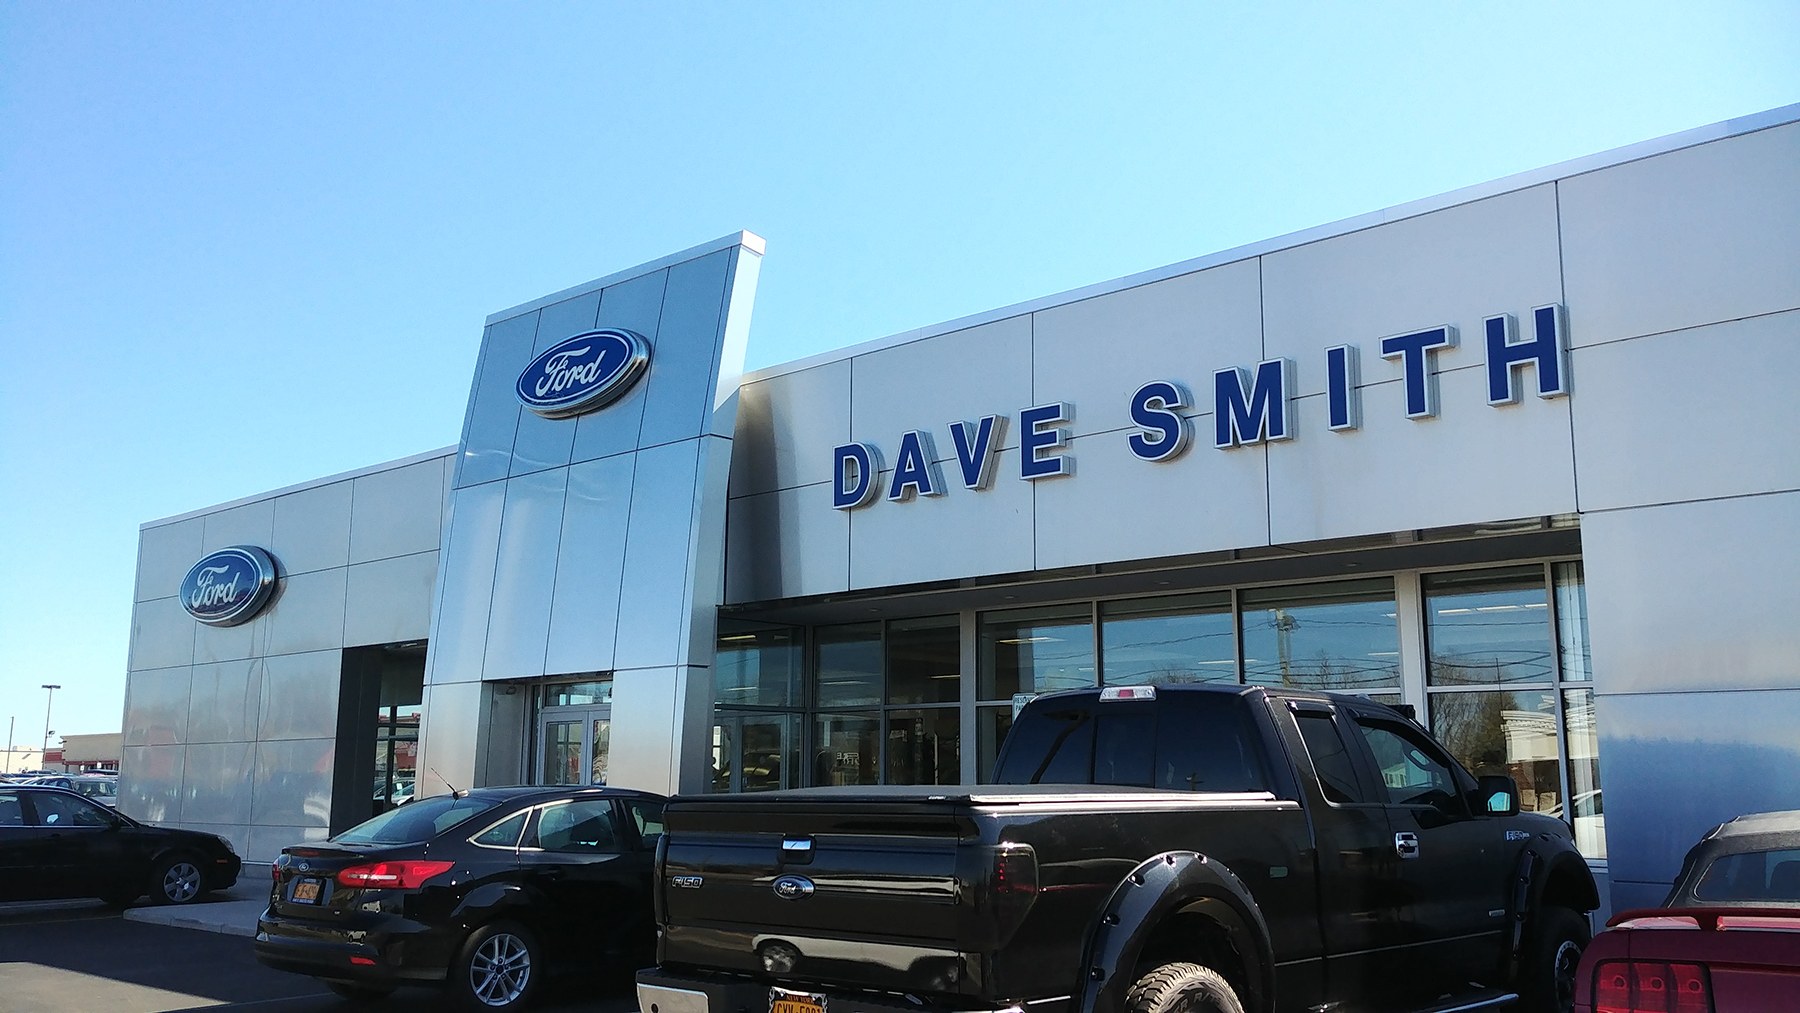 http://abp-distributors.com/wp-content/uploads/2018/05/Dave-Smith-Ford-1.jpg